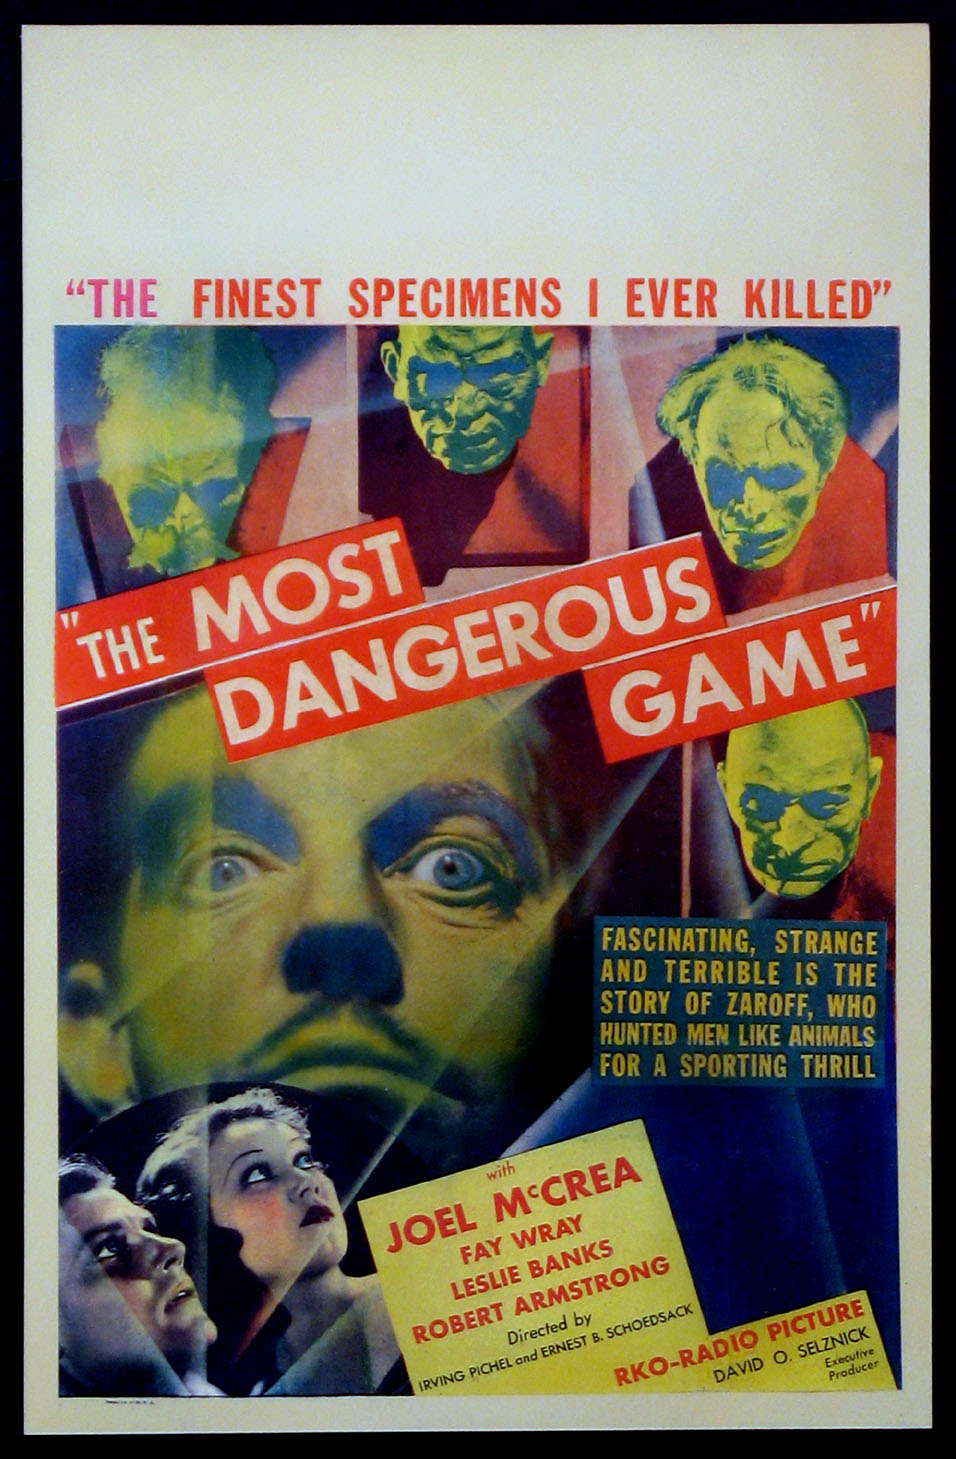 MOST DANGEROUS GAME, THE @ FilmPosters.com